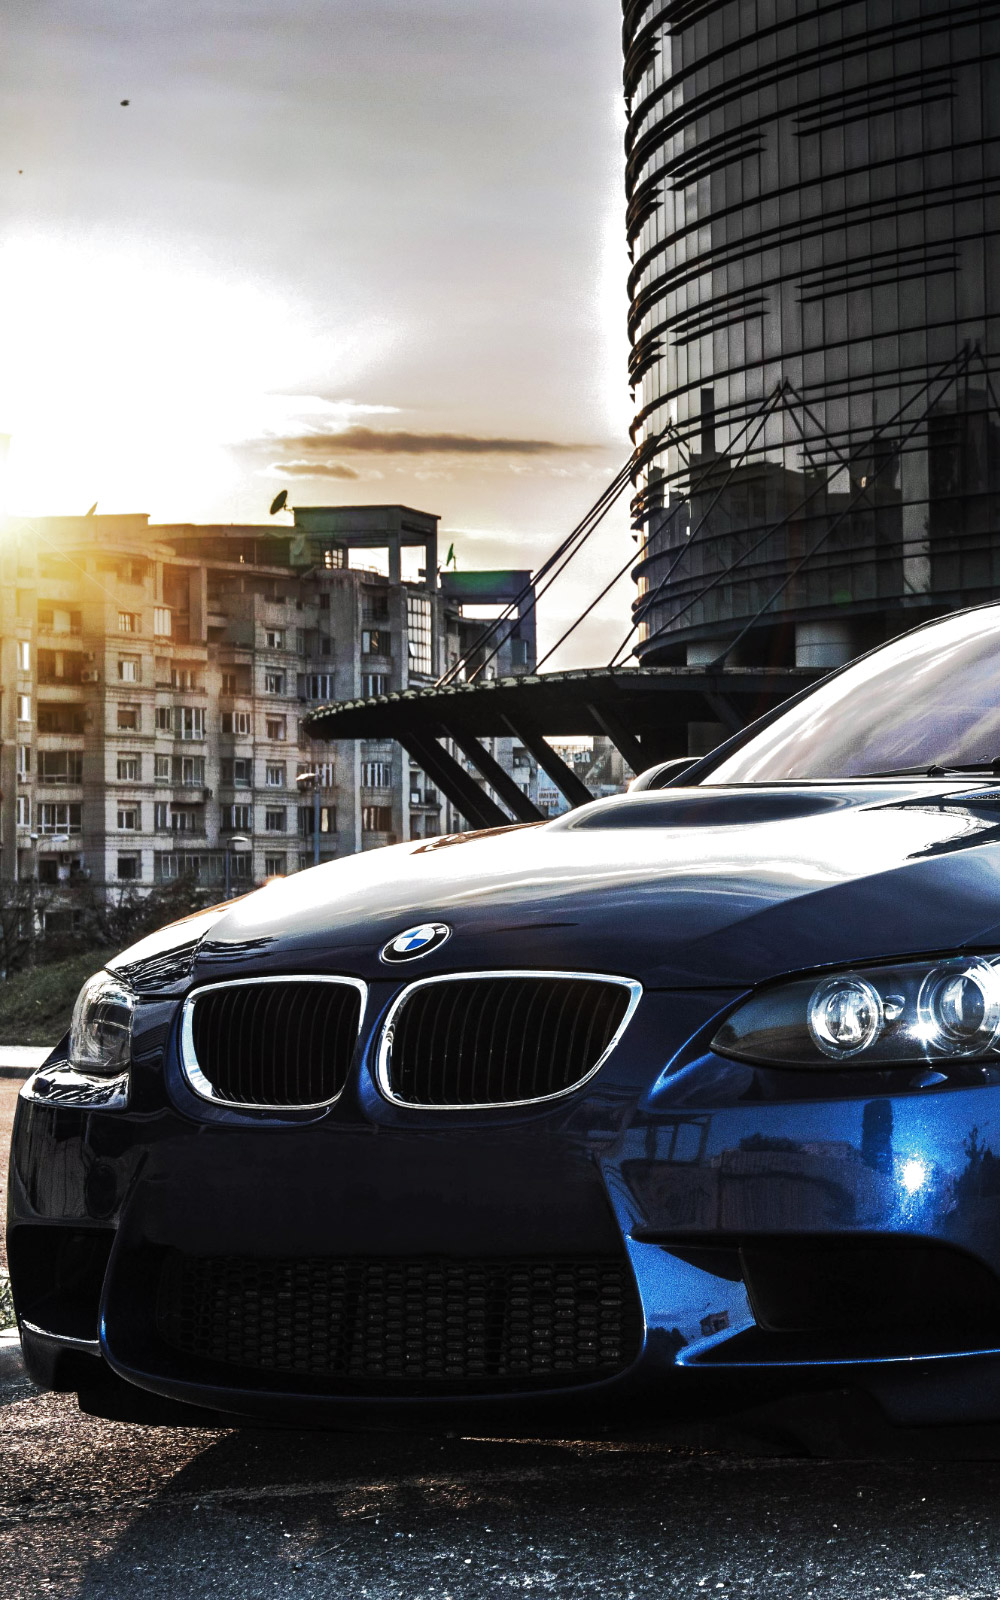 Bmw 3d Hd Wallpapers Download Bmw Car Wallpaper For Mobile Gallery